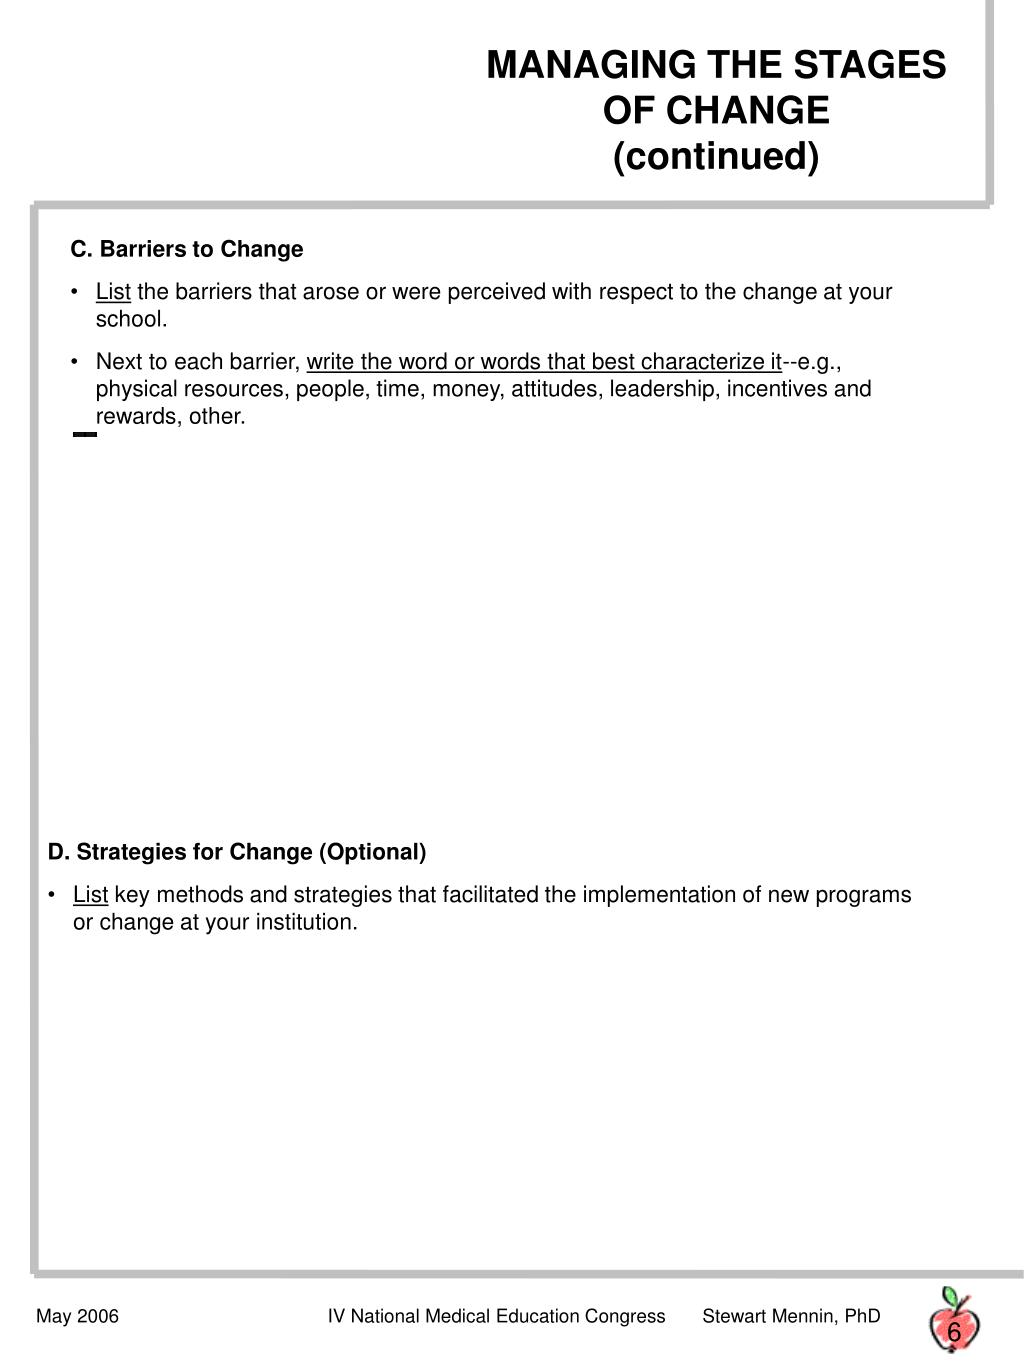 MANAGING THE STAGES OF CHANGE